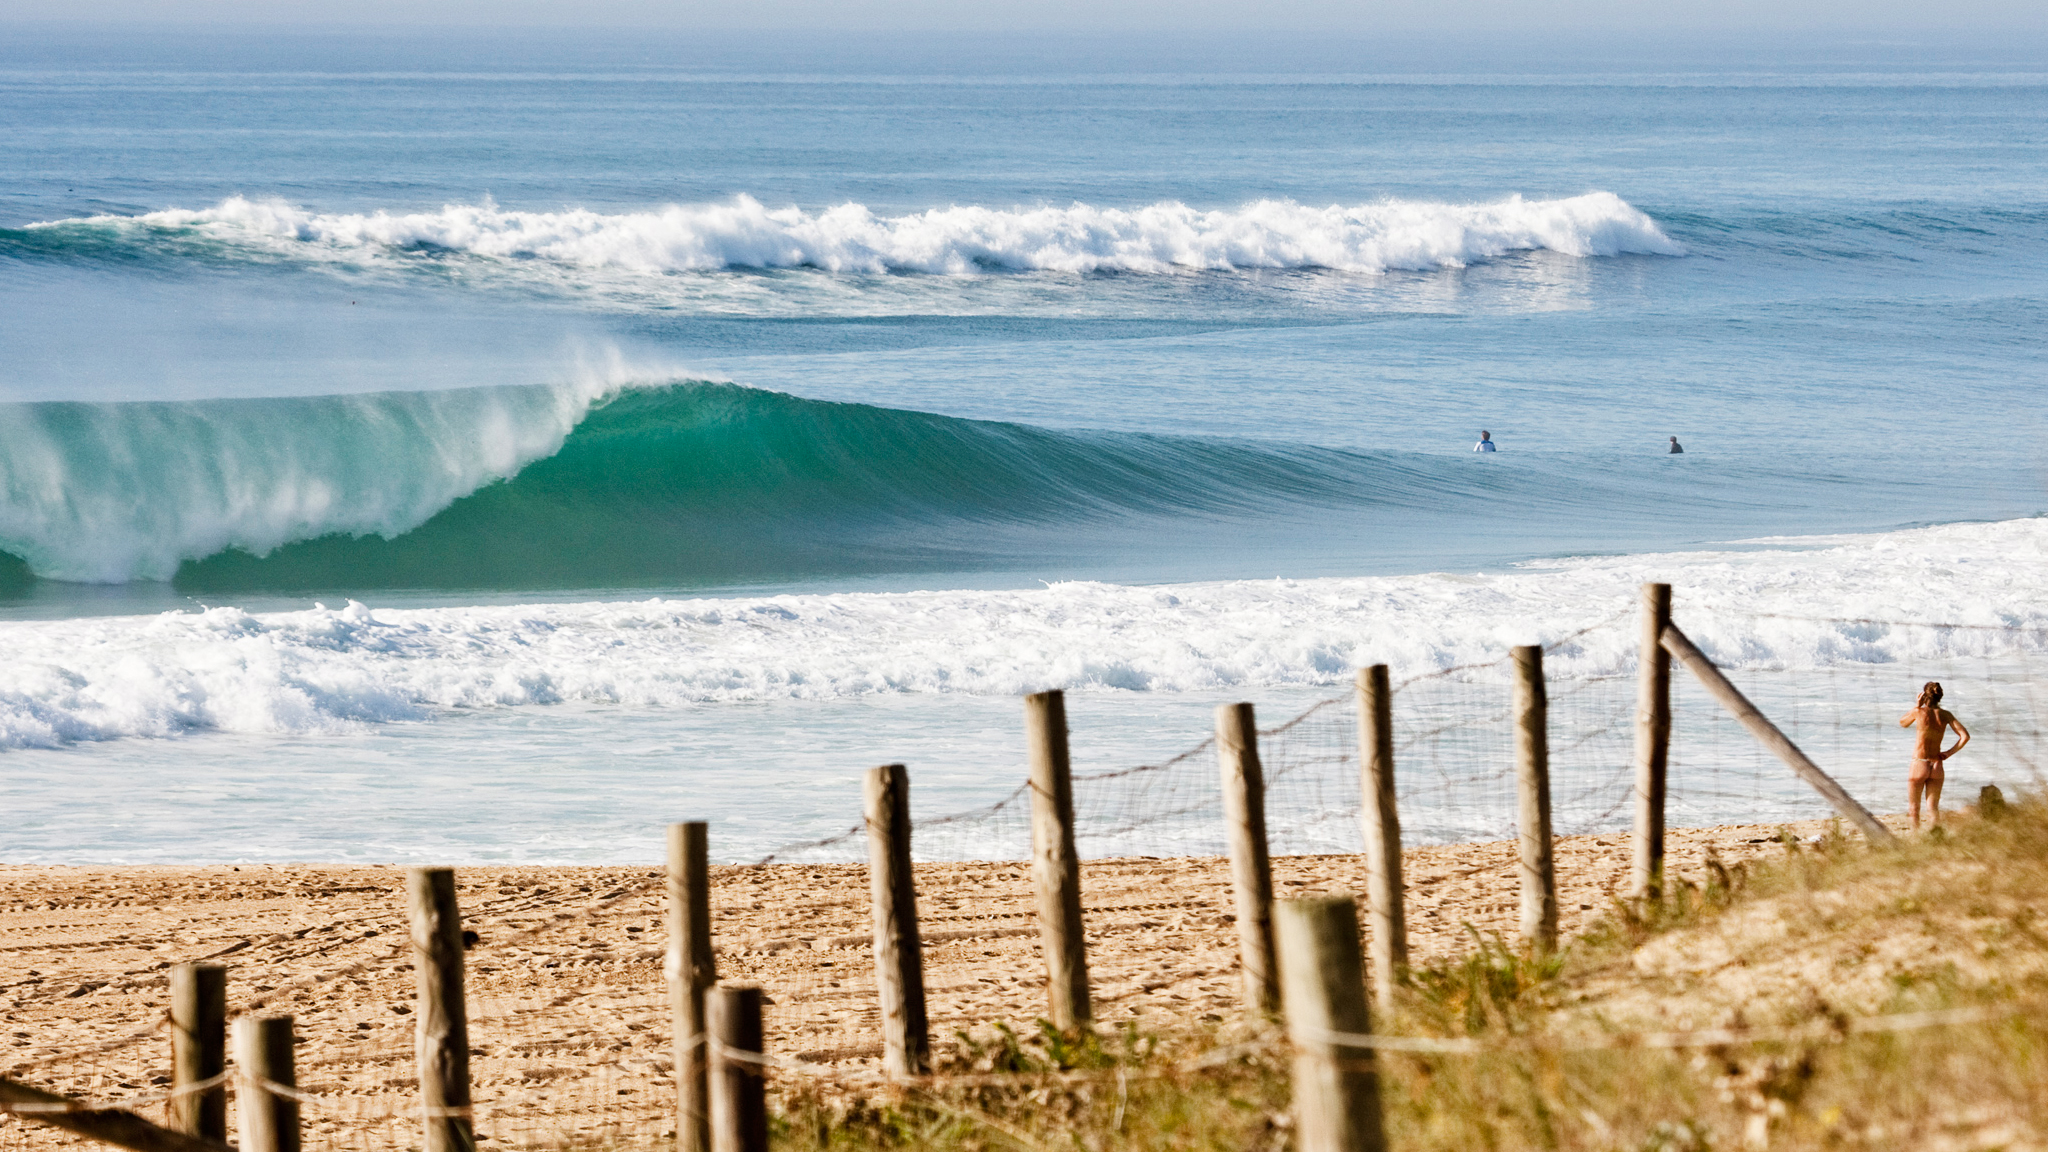 Hossegor is the reason that France has the reputation for having some of the best beach breaks in the world. It may also be the reason that the rest of the world wears swim suits.